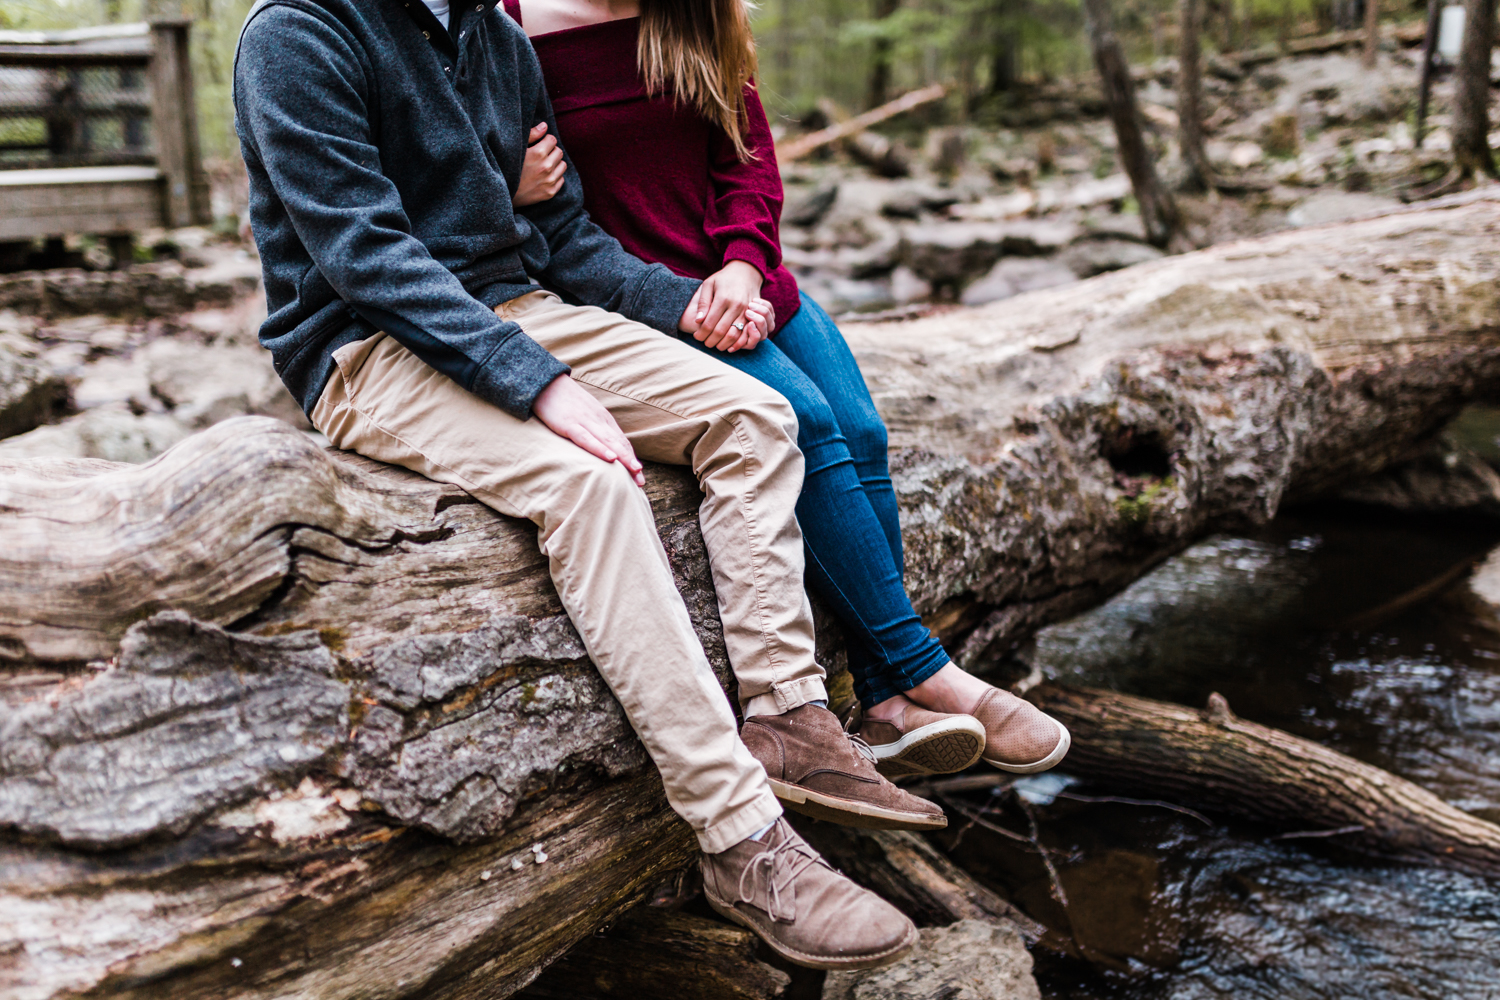 woodsy engagement session in thurmont, md - engagement locations close to frederick maryland